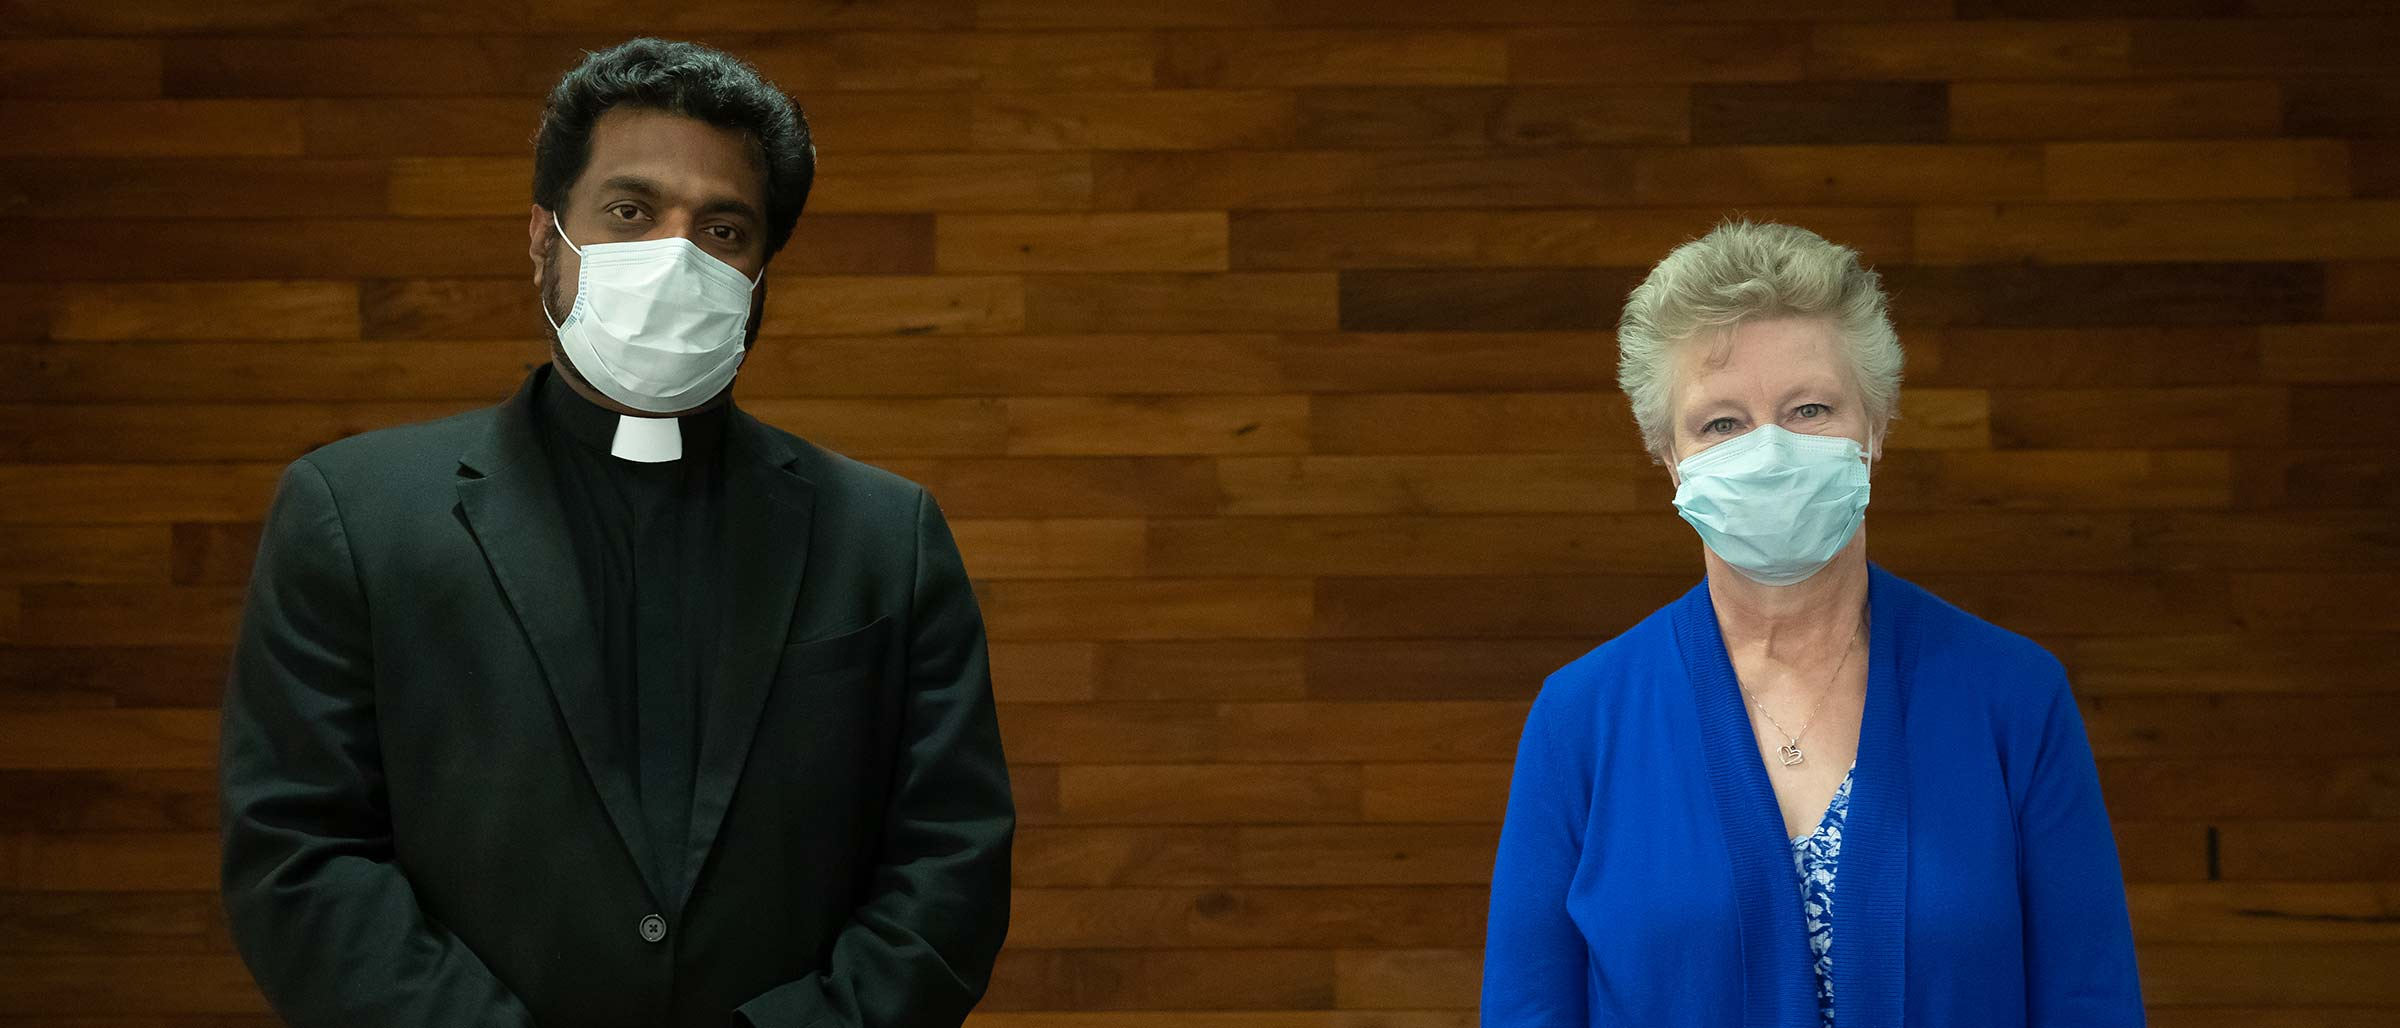 Man in black jacket and priest's collar and woman in blue, wearing masks and standing apart, in wood paneled room